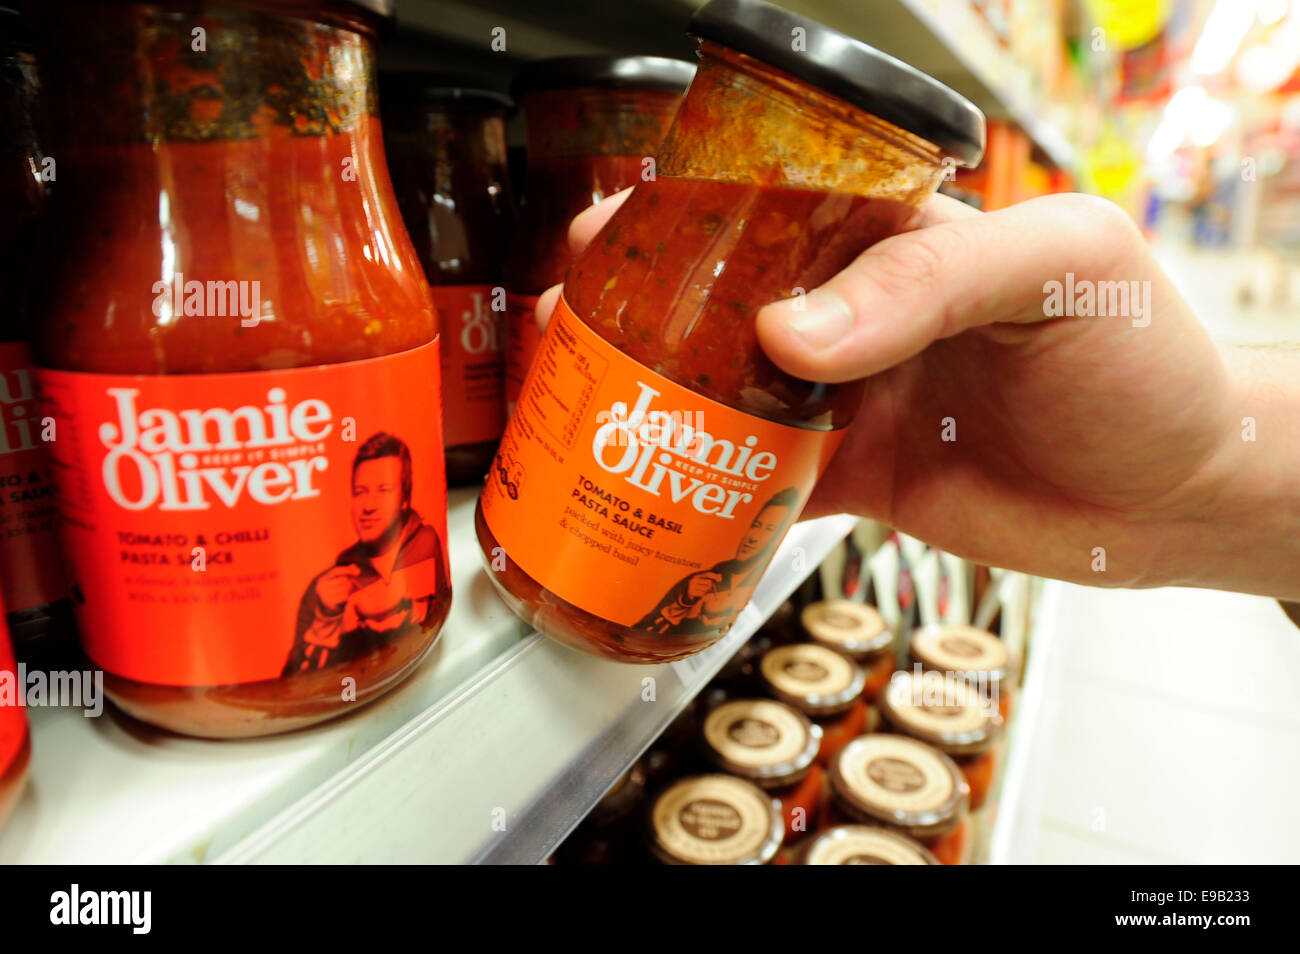 taking Jamie oliver product from shelf (Newscast)(Model Released) - Stock Image